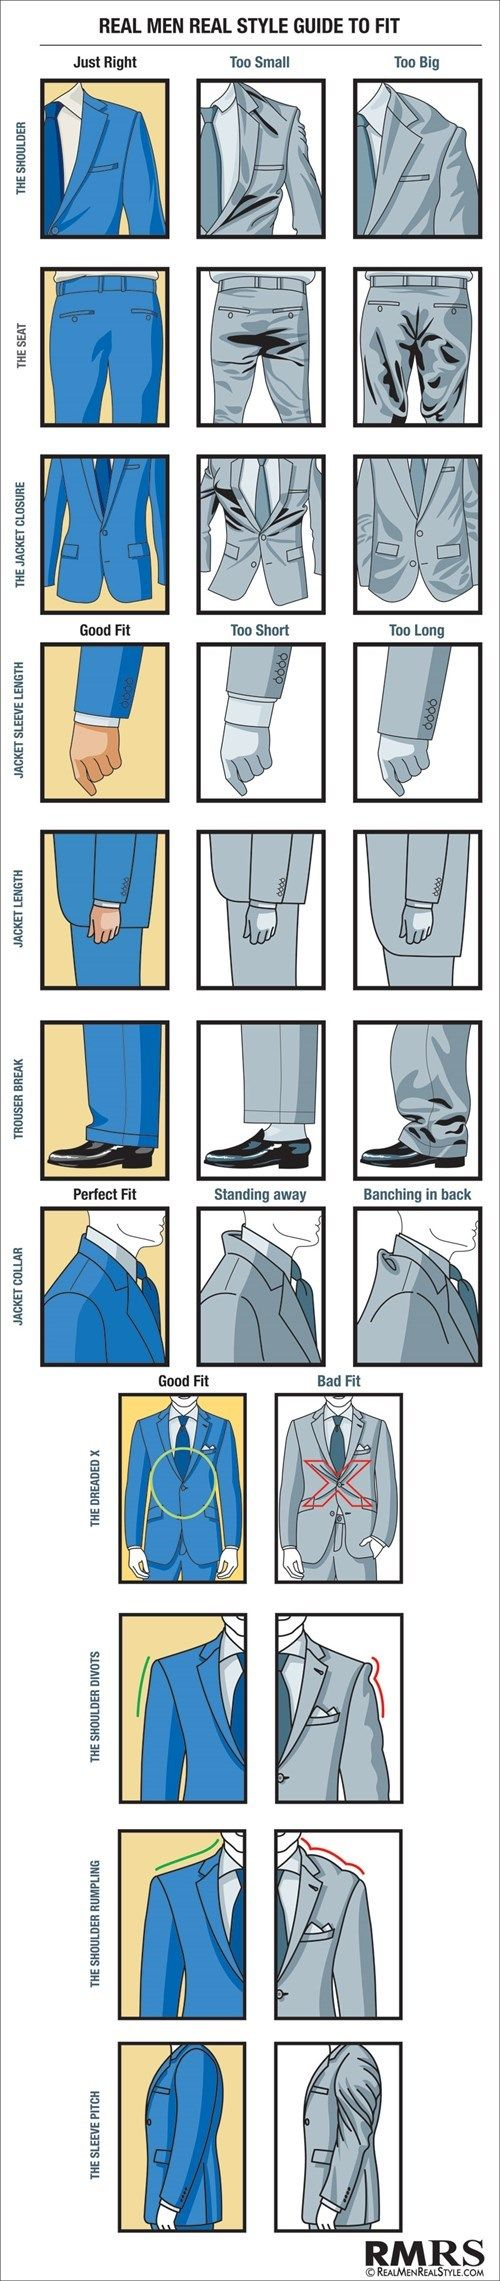 Your perfect guide to figuring out if your suit fits you. Seems like we're all still trying to master it!